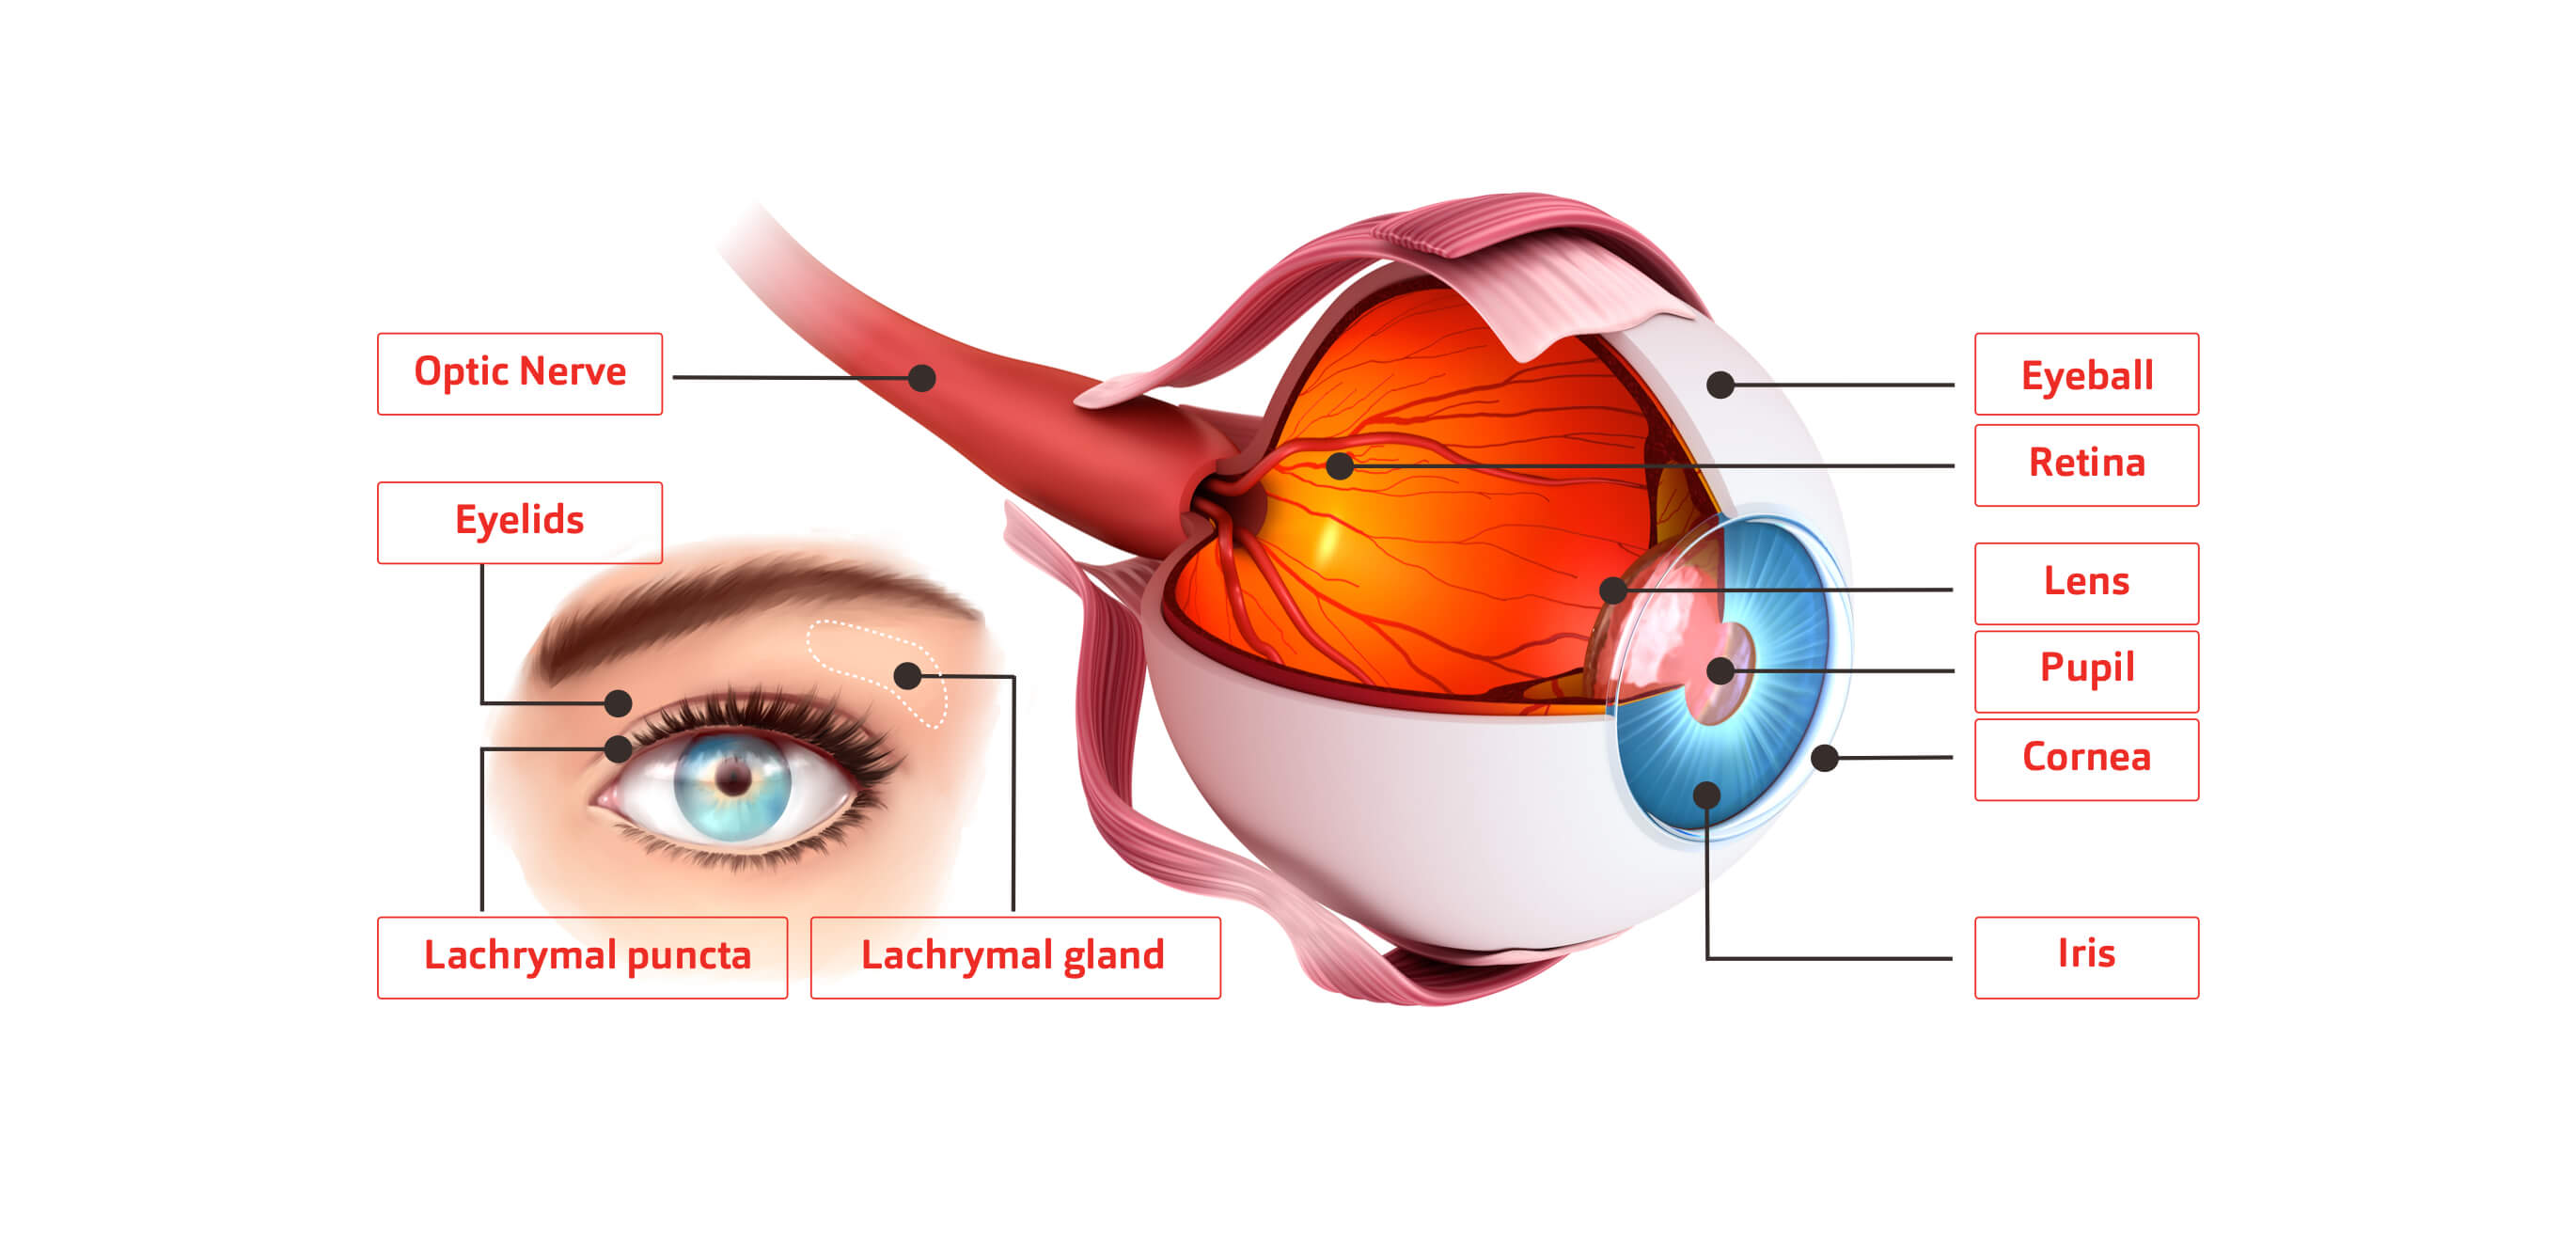 An illustrated cross-section diagram of a human eye.